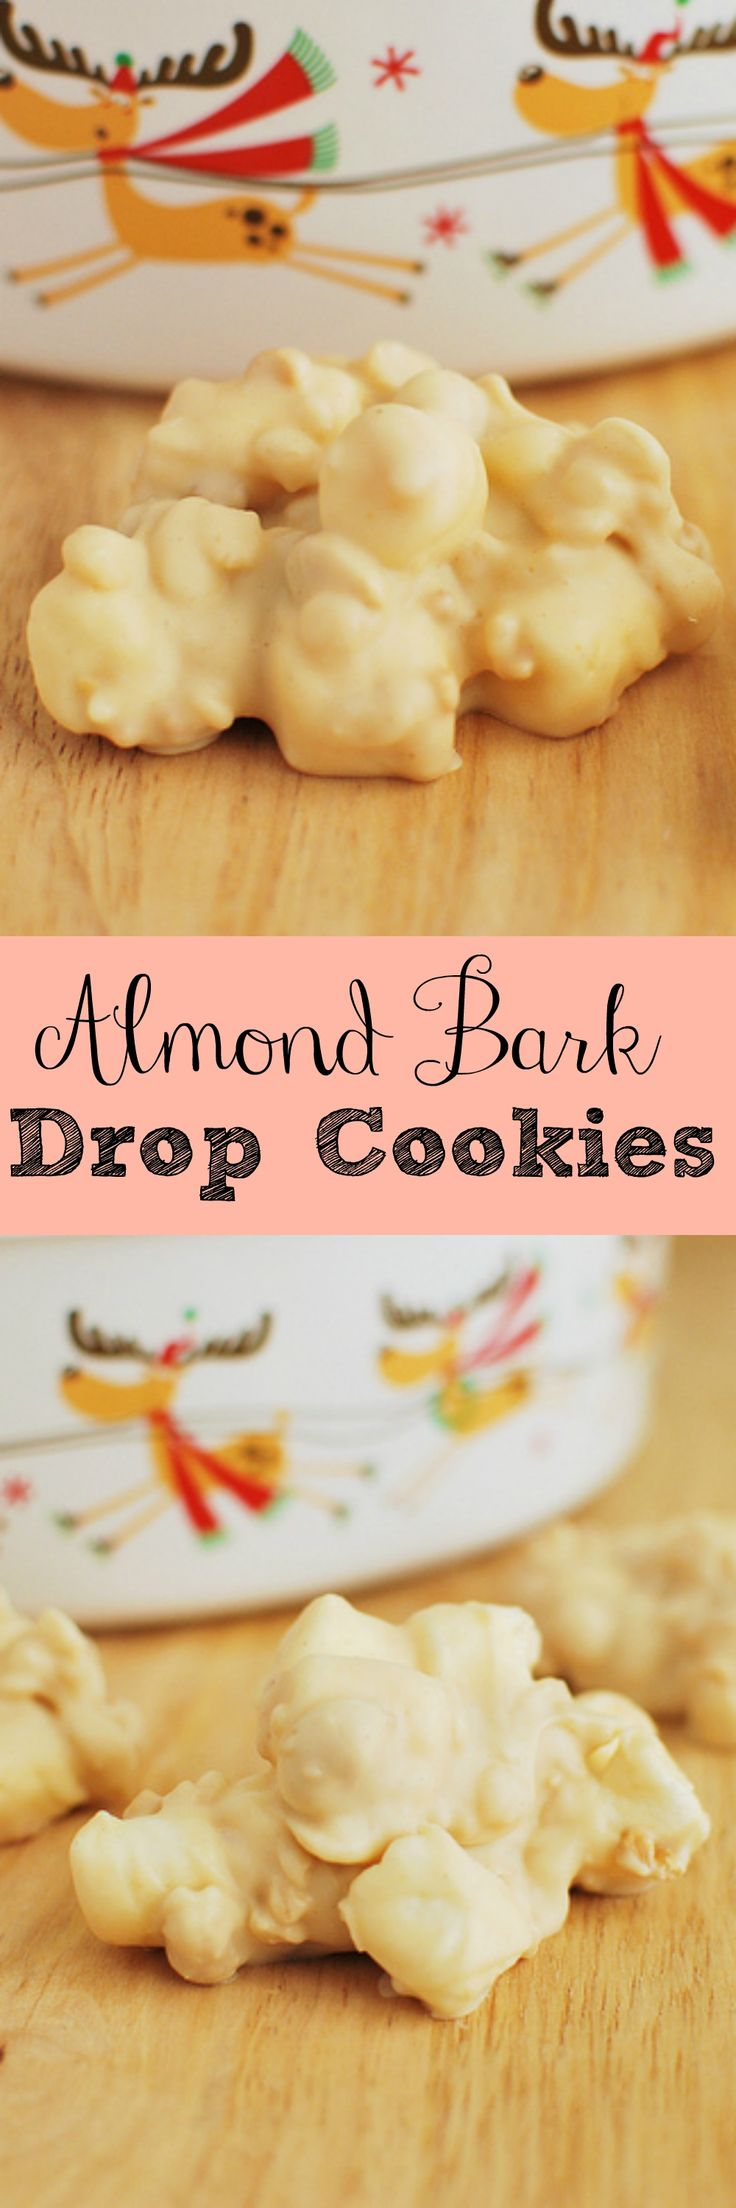 Almond Bark Drop Cookies - my favorite Christmas cookies recipe! Peanuts, Rice Krispies, and marshmallows coated in white chocolate and peanut butter!